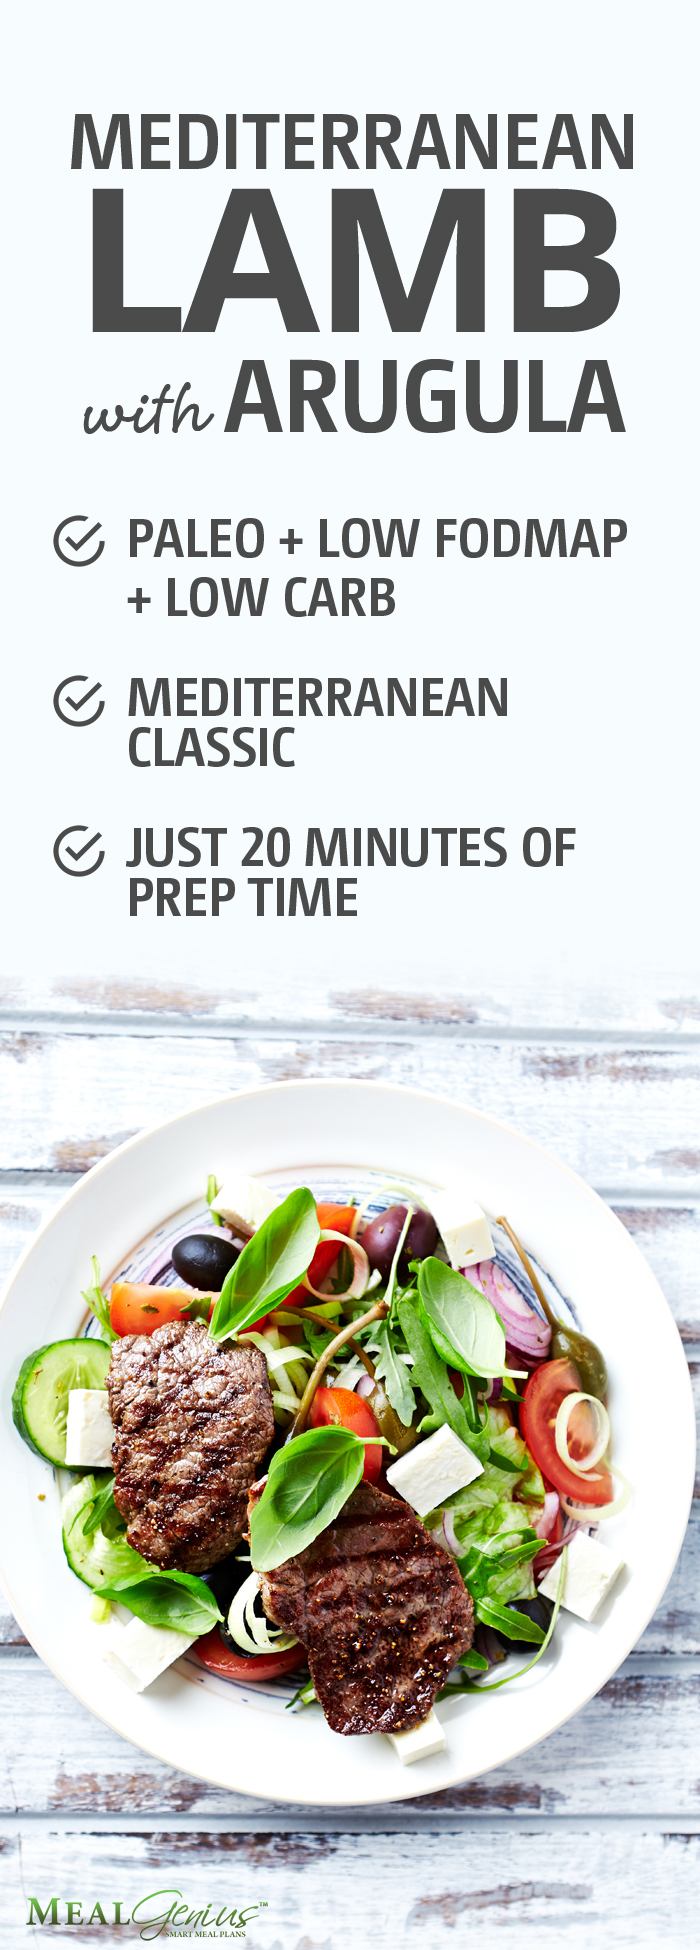 Mediterranean Lamb with Arugula and Olives - Meal Genius